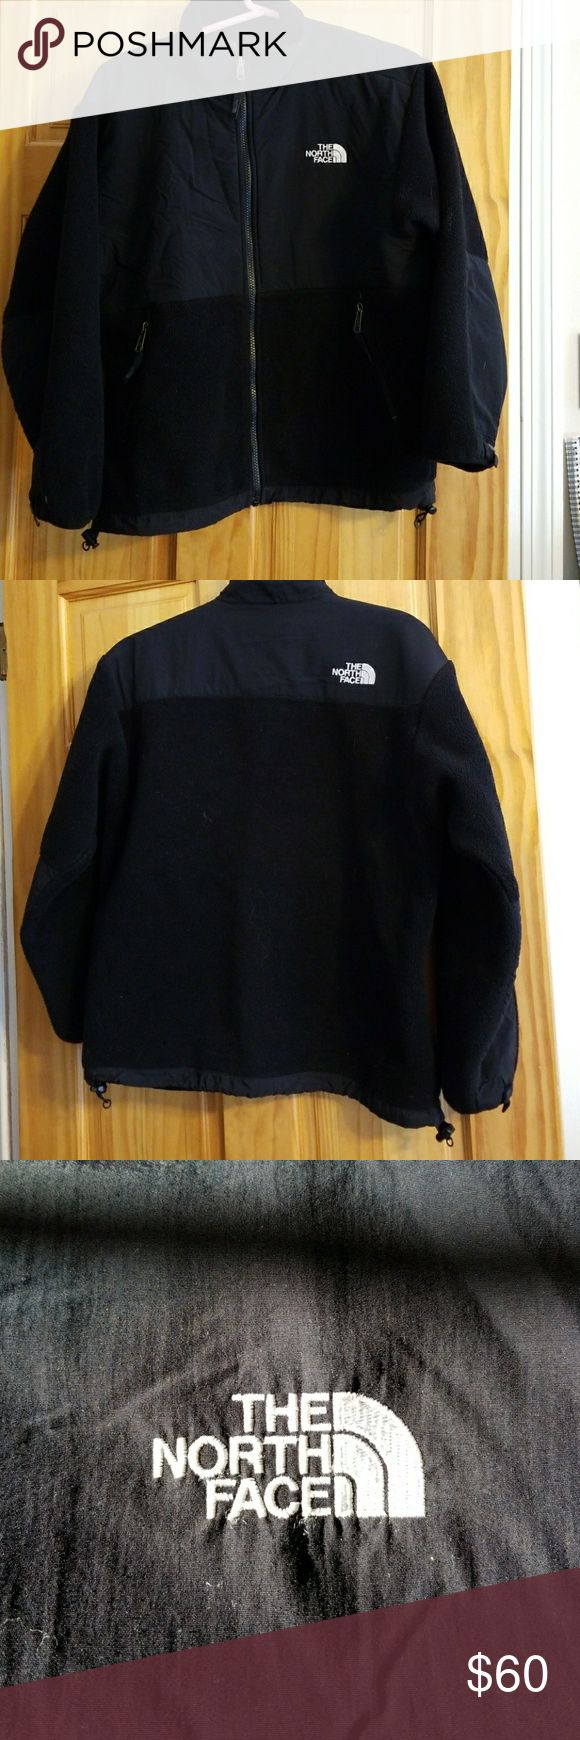 A North Face fleece jacket. This is a black on black fleece North Face sweater/jacket in very good condition. Its very warm and comfy. North Face Jackets & Coats